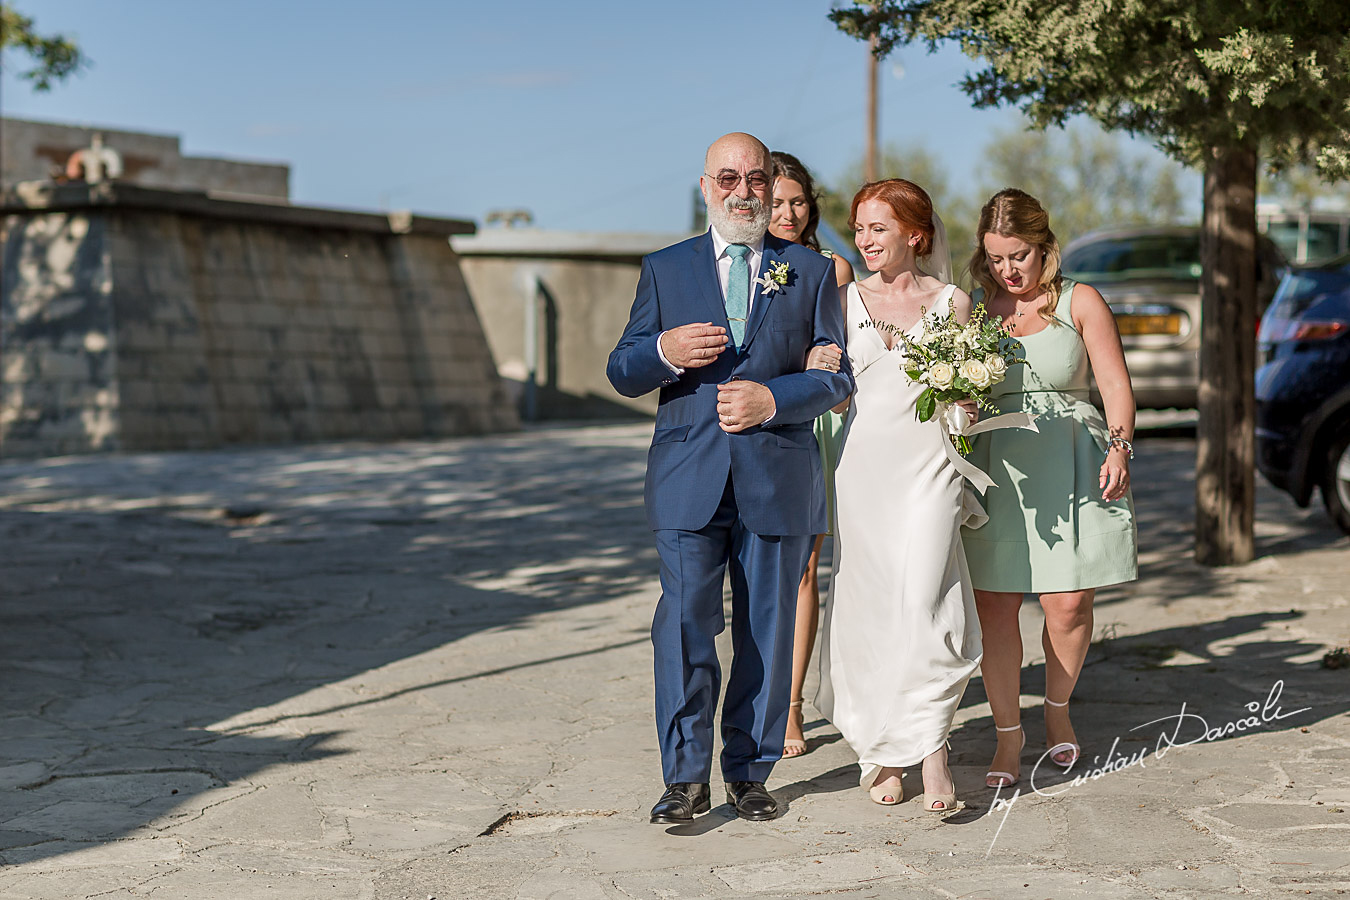 Wedding Celebration at Apokryfo - 31